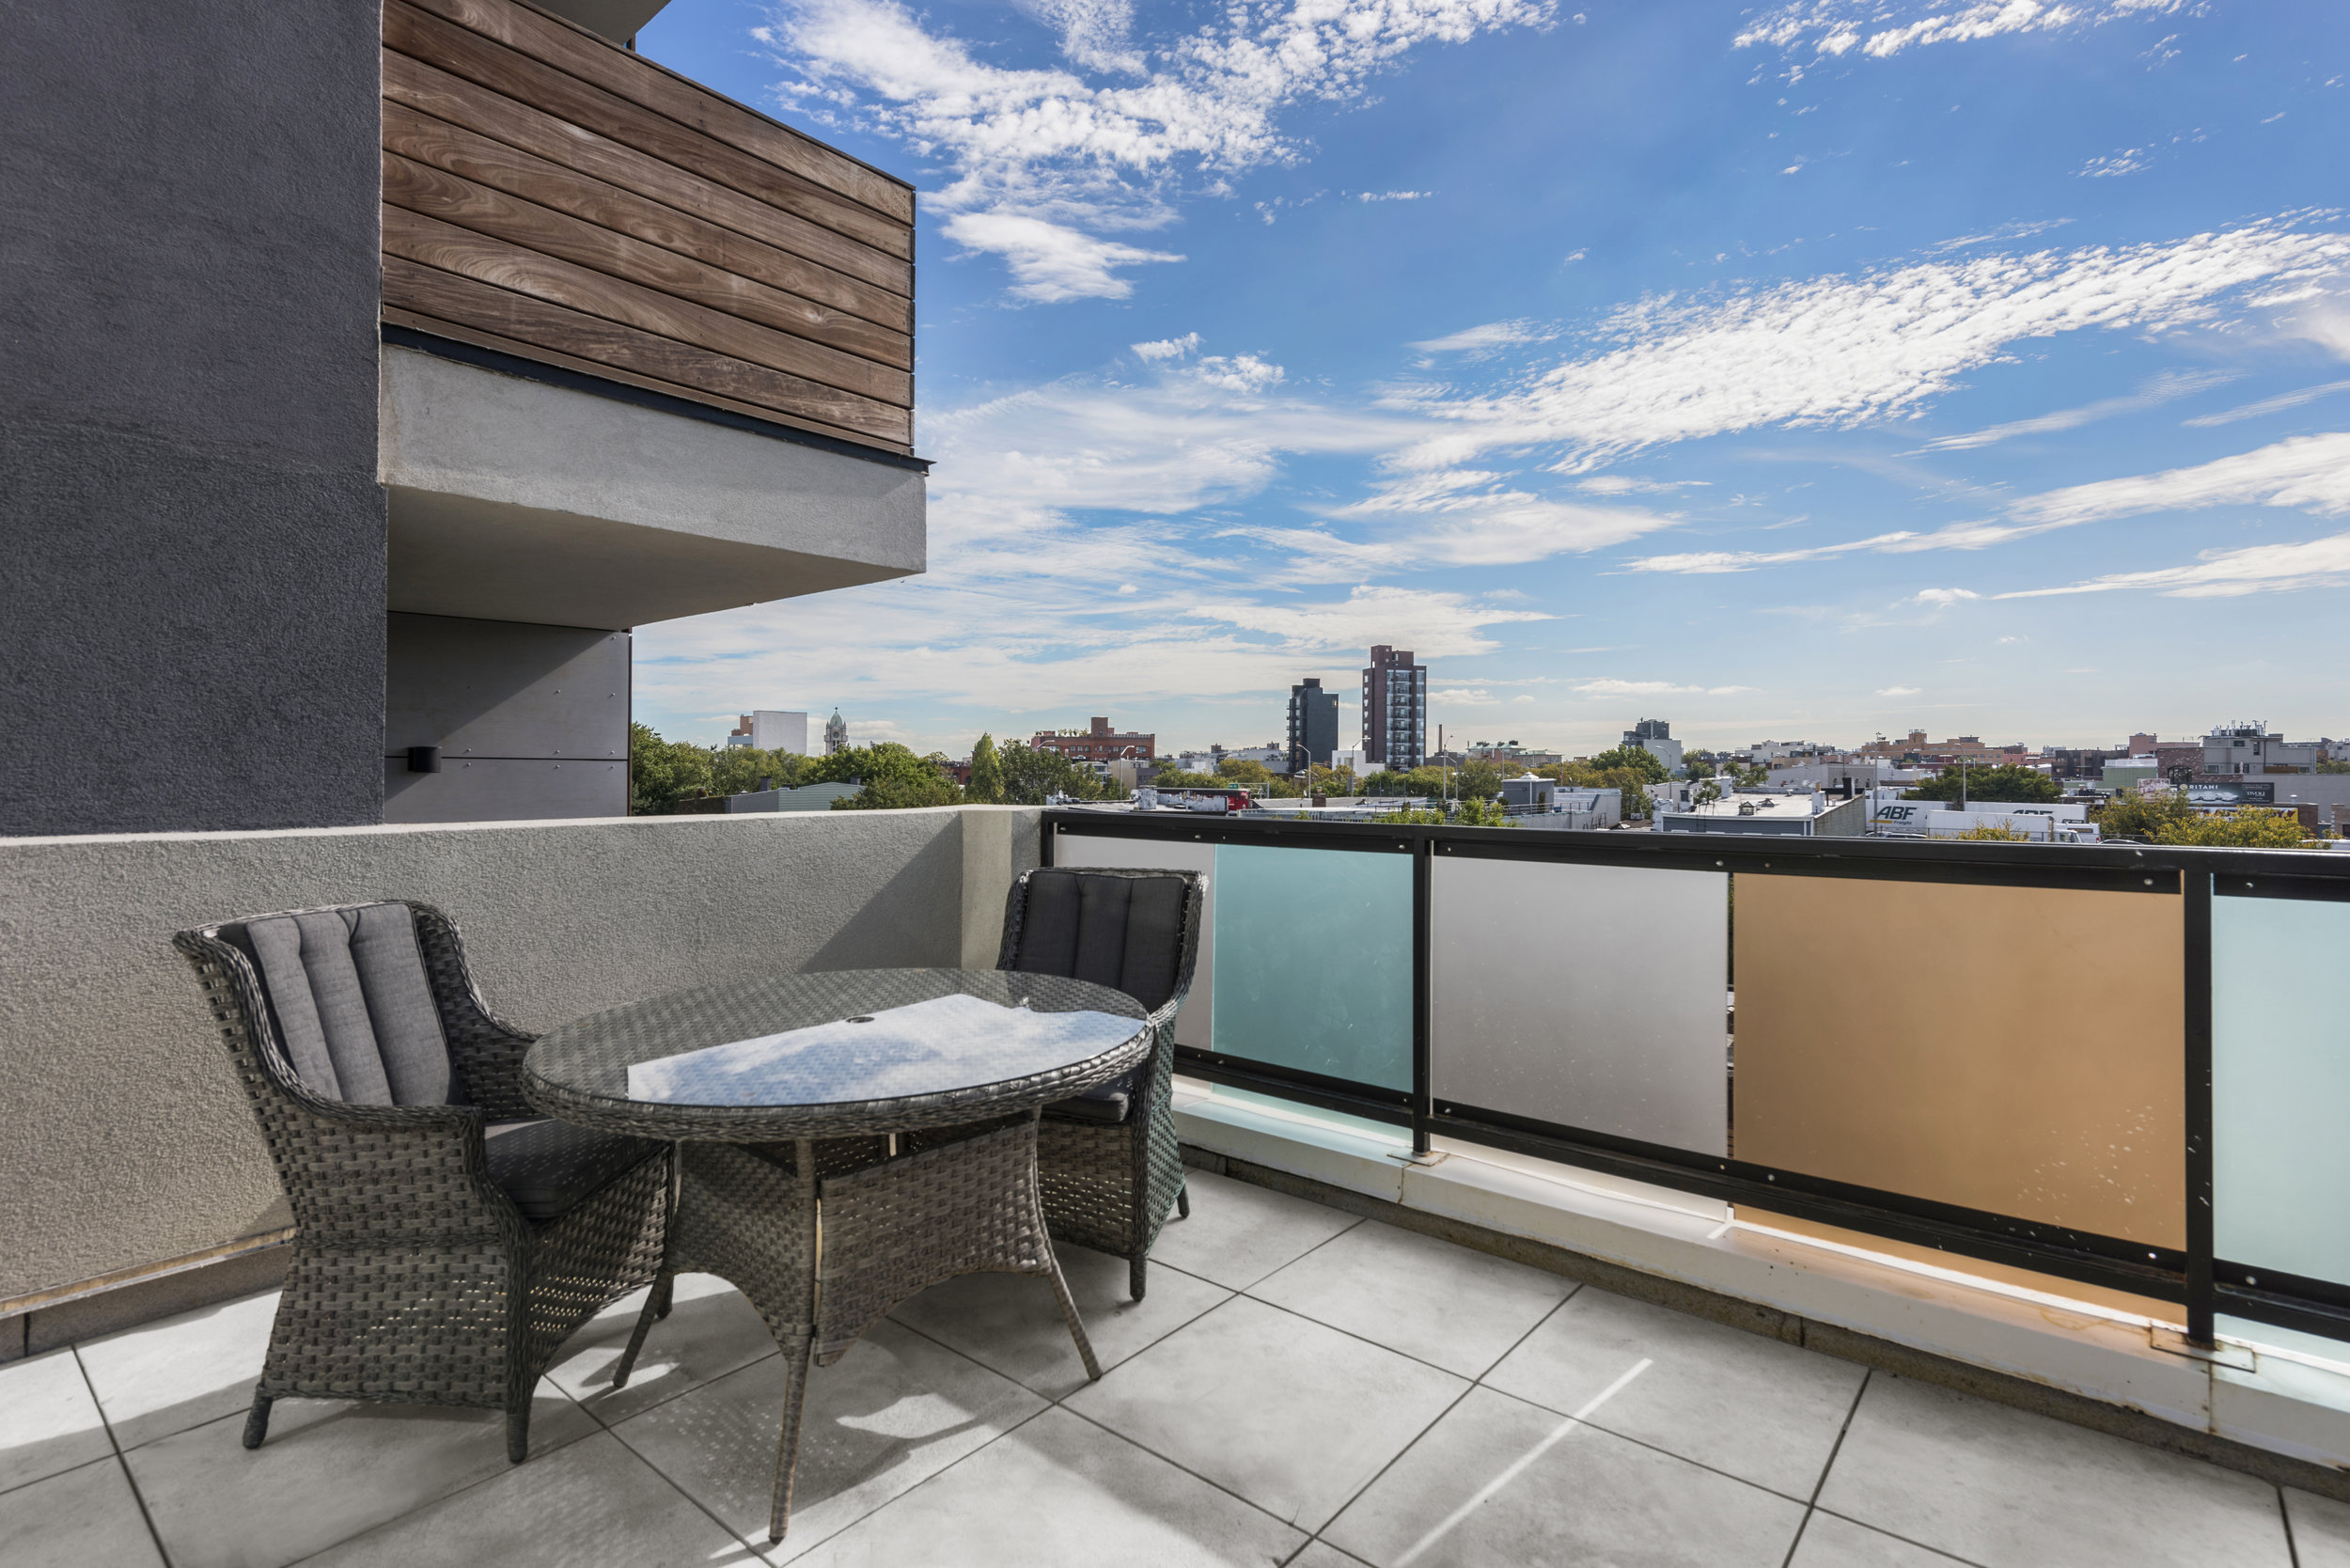 Rooftop Amenities